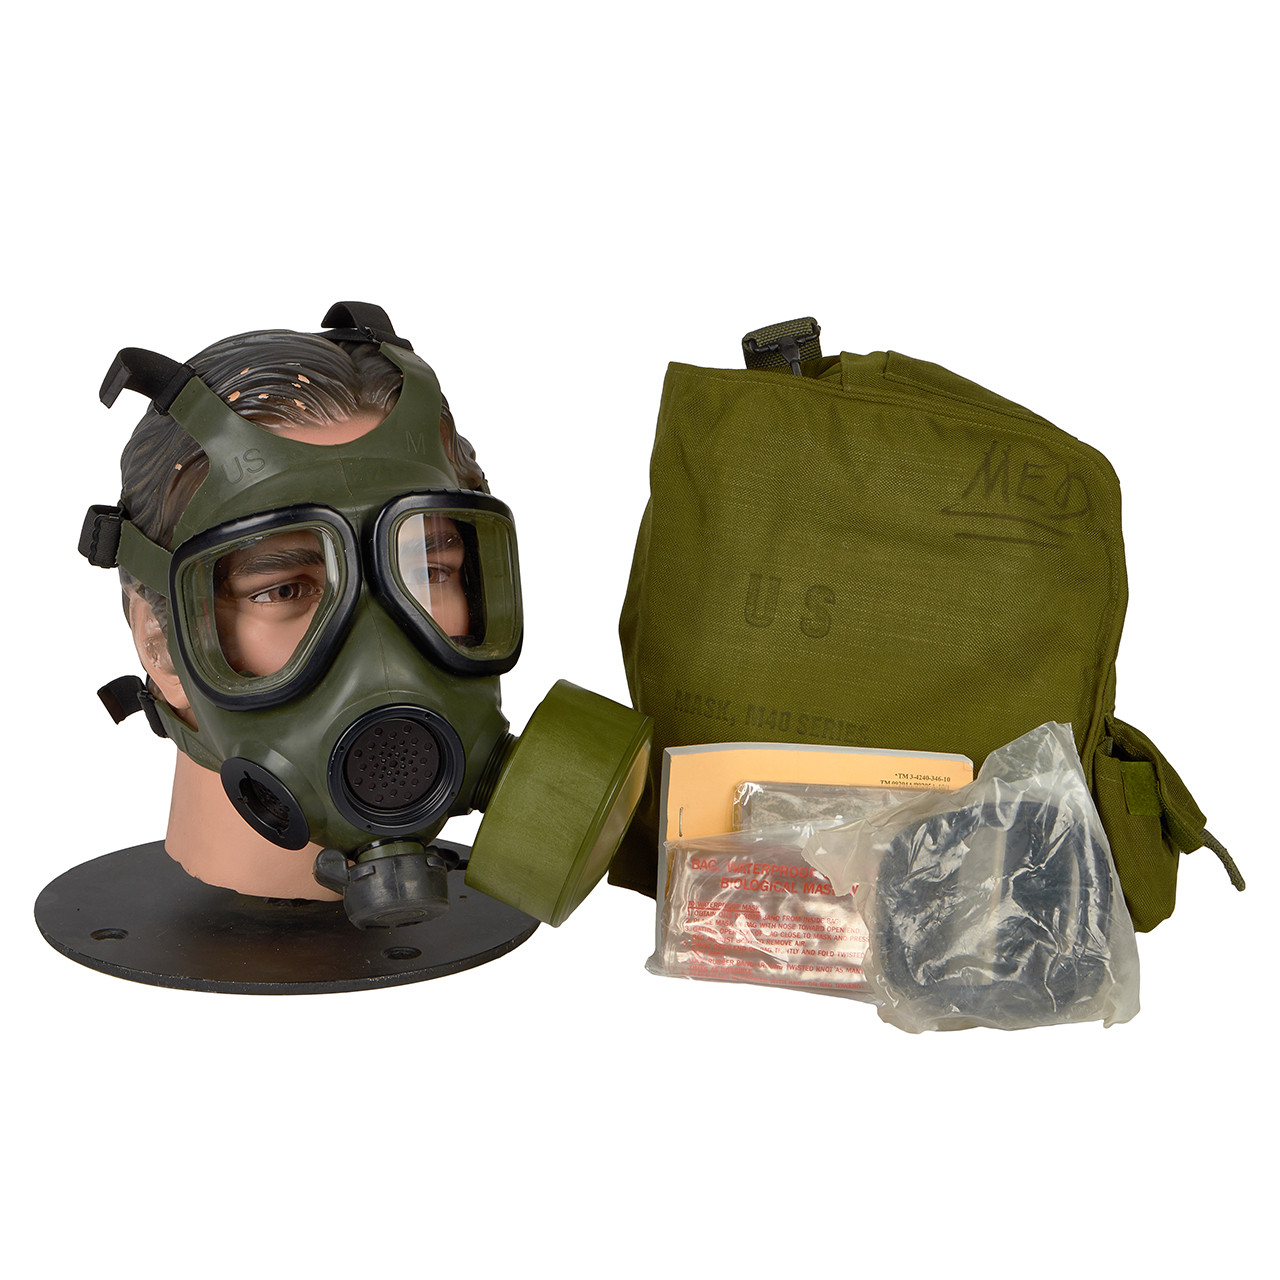 GM40 M40 SERIES G.I. ISSUE GAS MASK